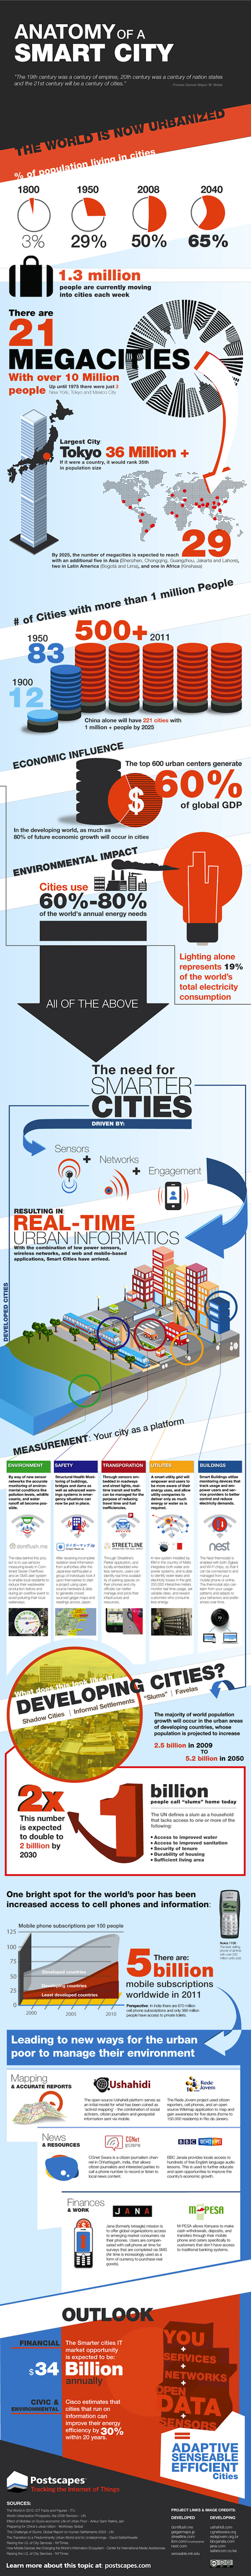 Anatomy-of-smart-city-infographic1